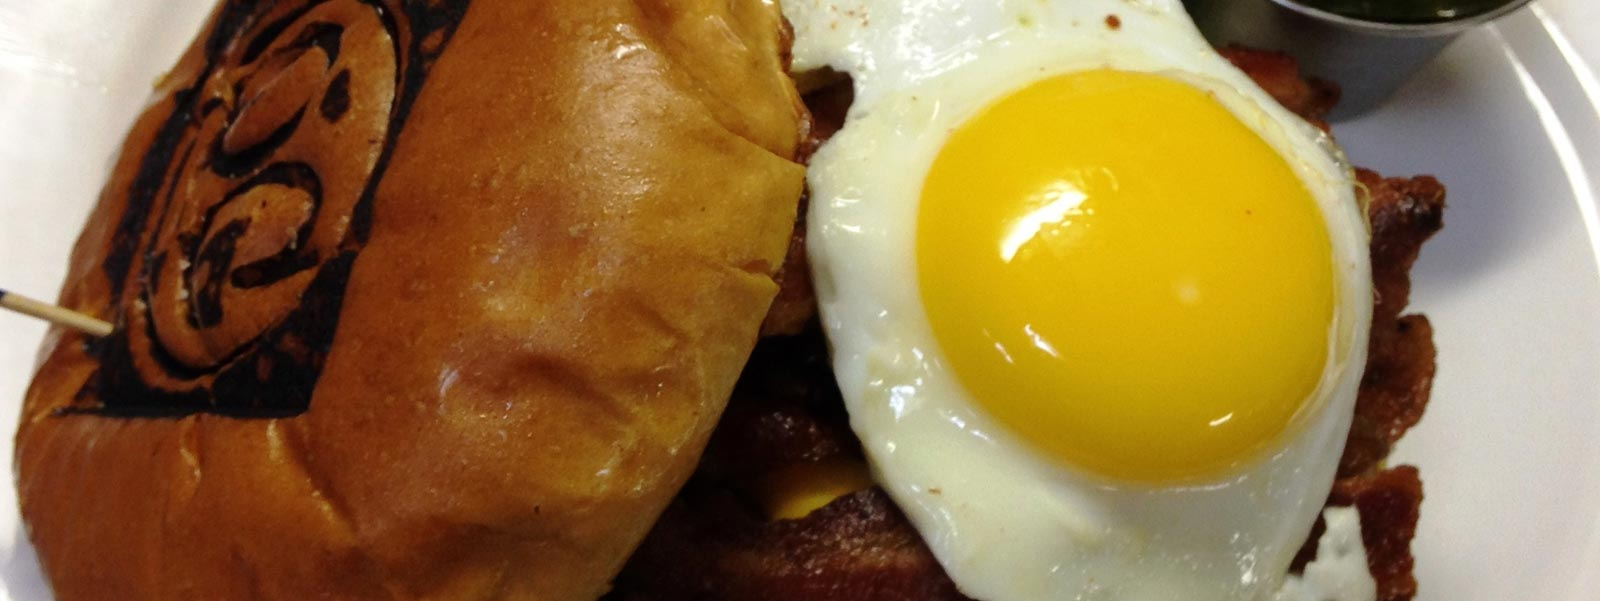 Qc Pancake House Mail: Quad Cities Breakfast And Brunch Diner